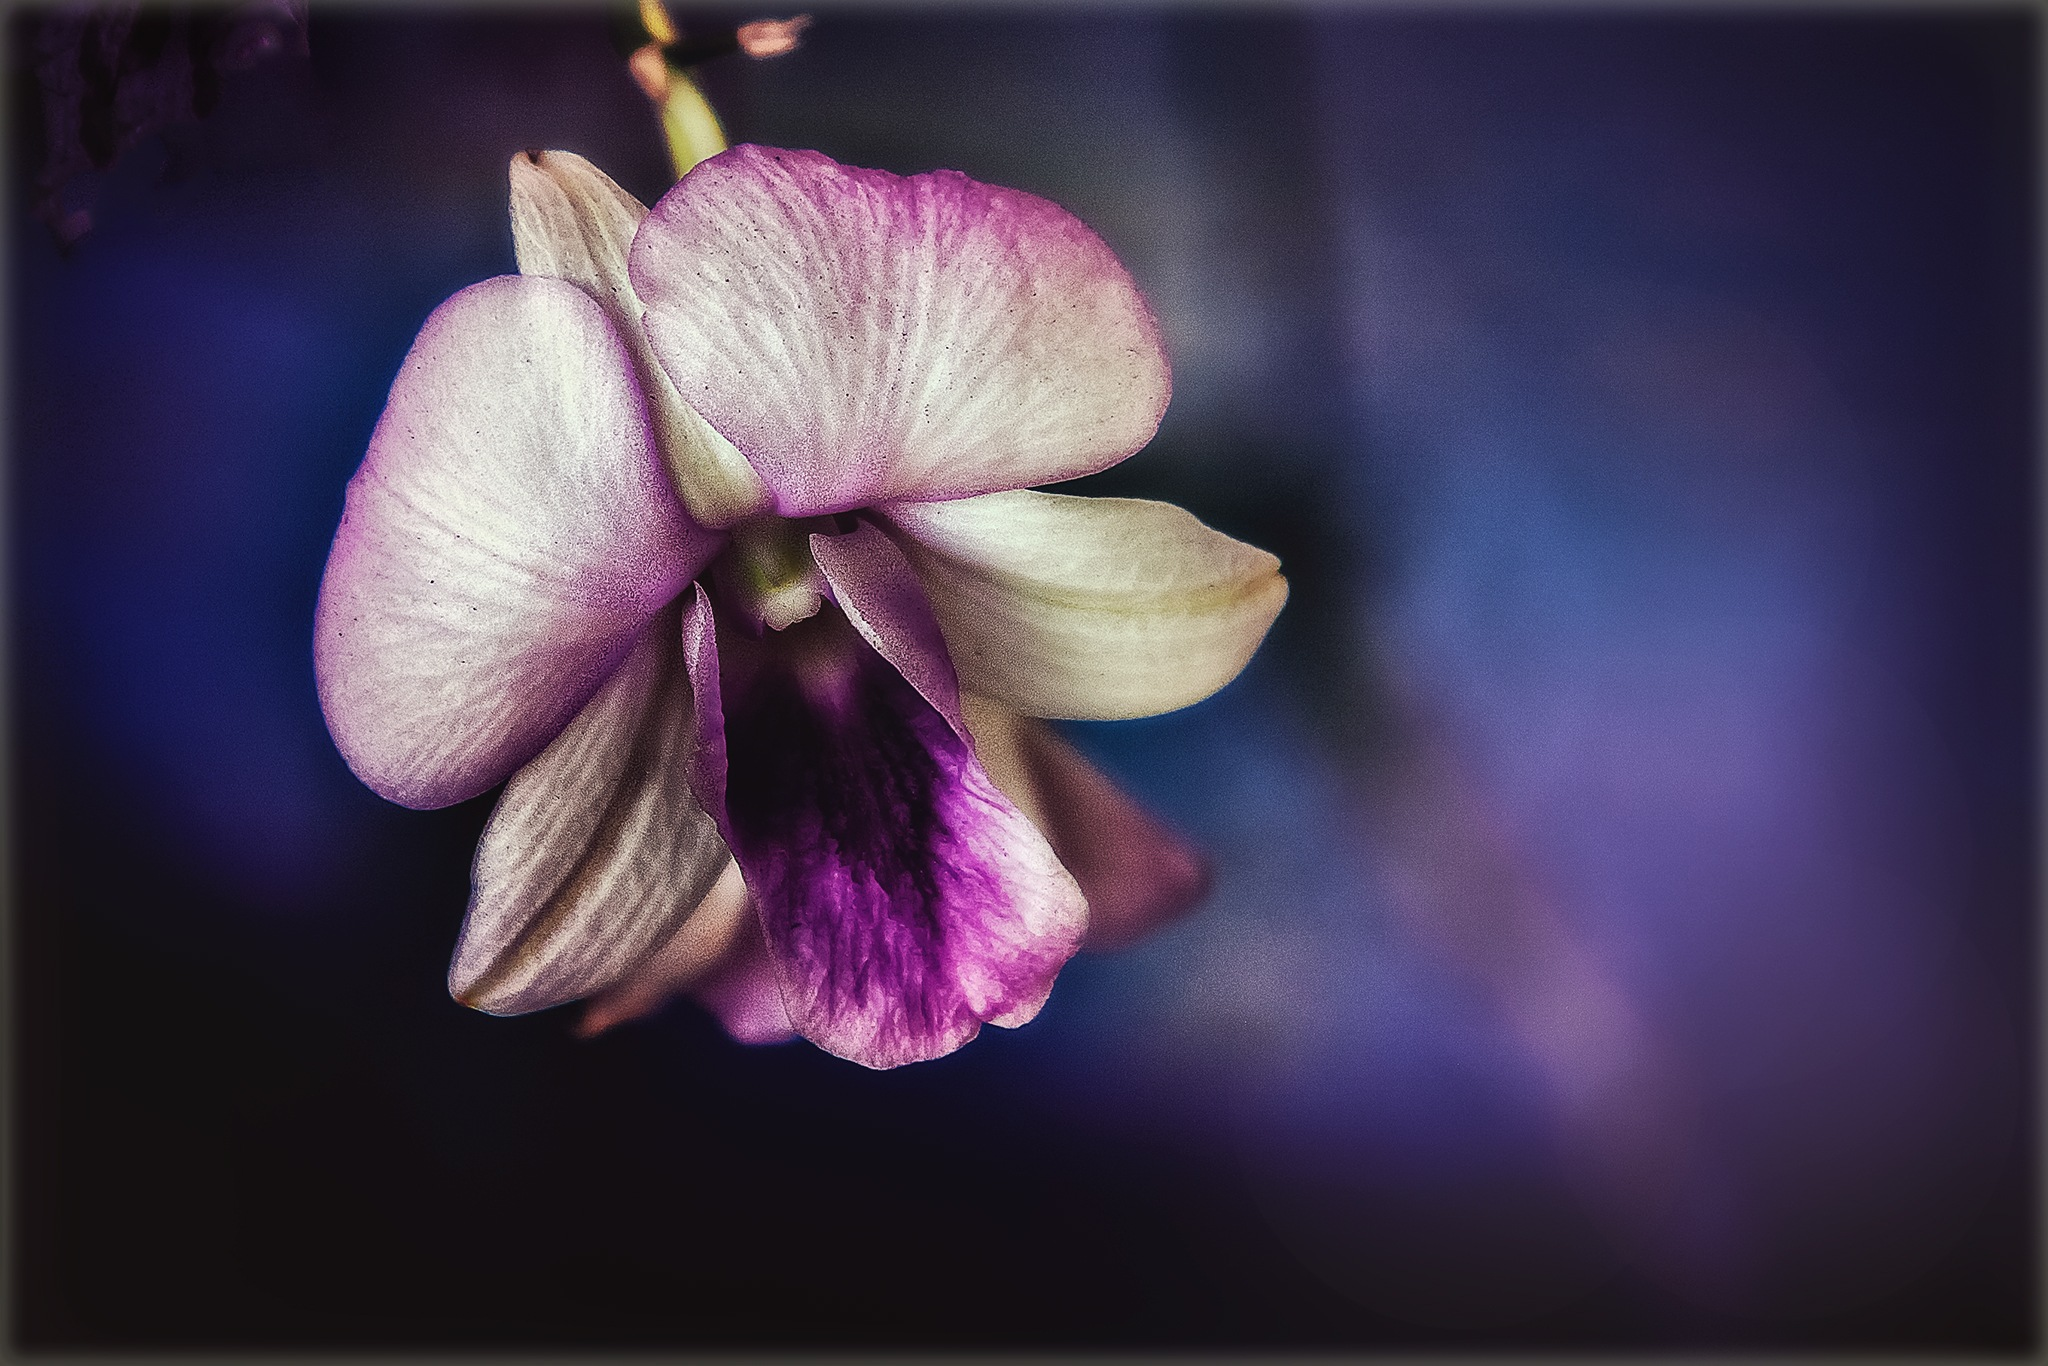 Nature 107-001 - Purple touch Orchid by Tony Guzman